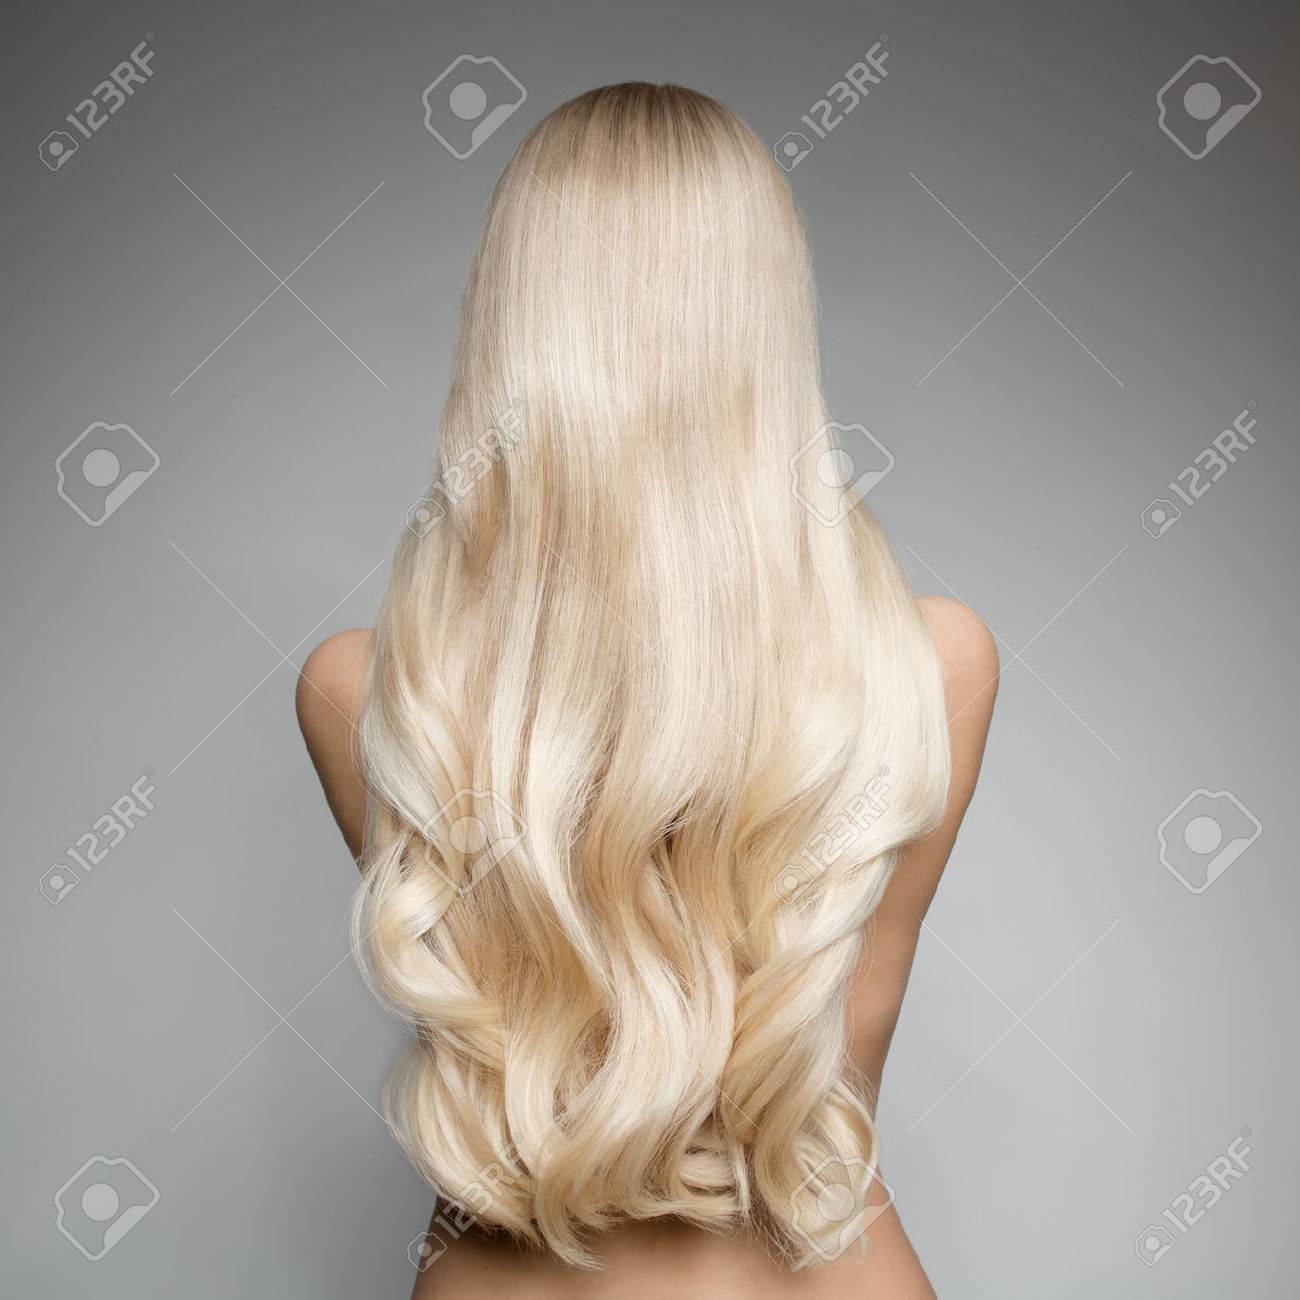 Portrait Of Beautiful Young Blond Woman With Long Wavy Hair. Back view - 66526637